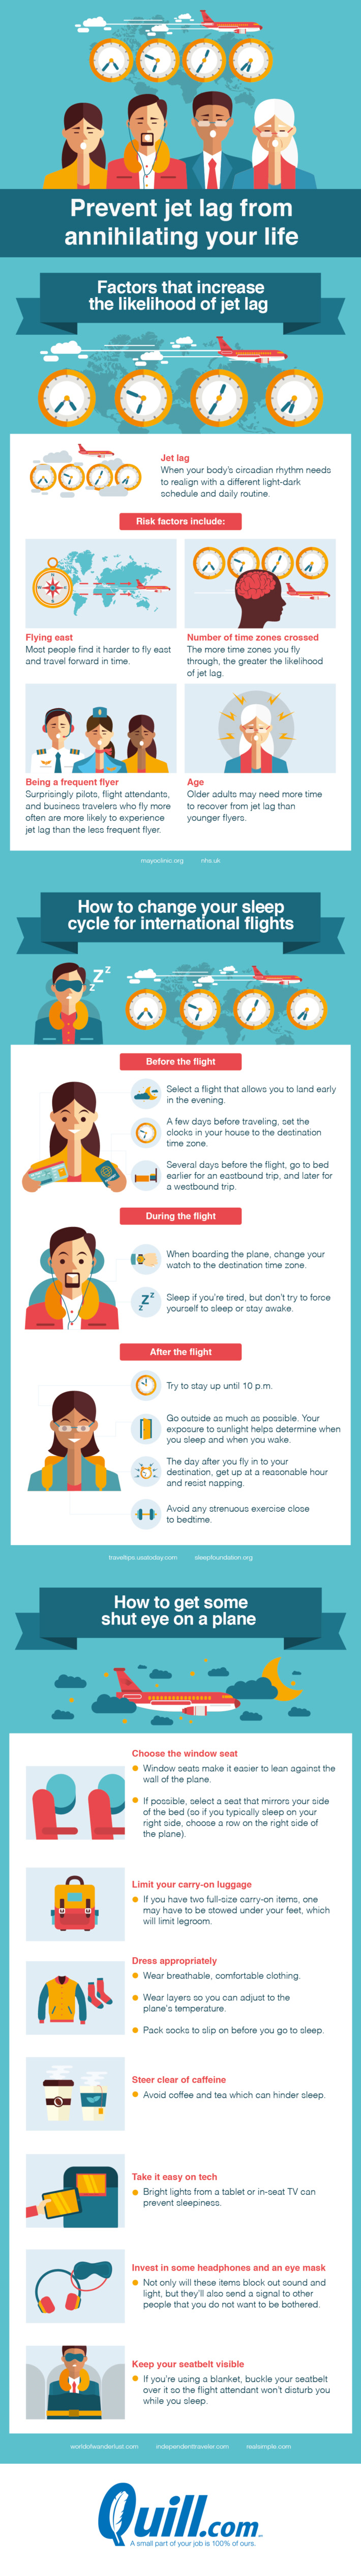 Preventing Jet Lag When Traveling [Infographic]